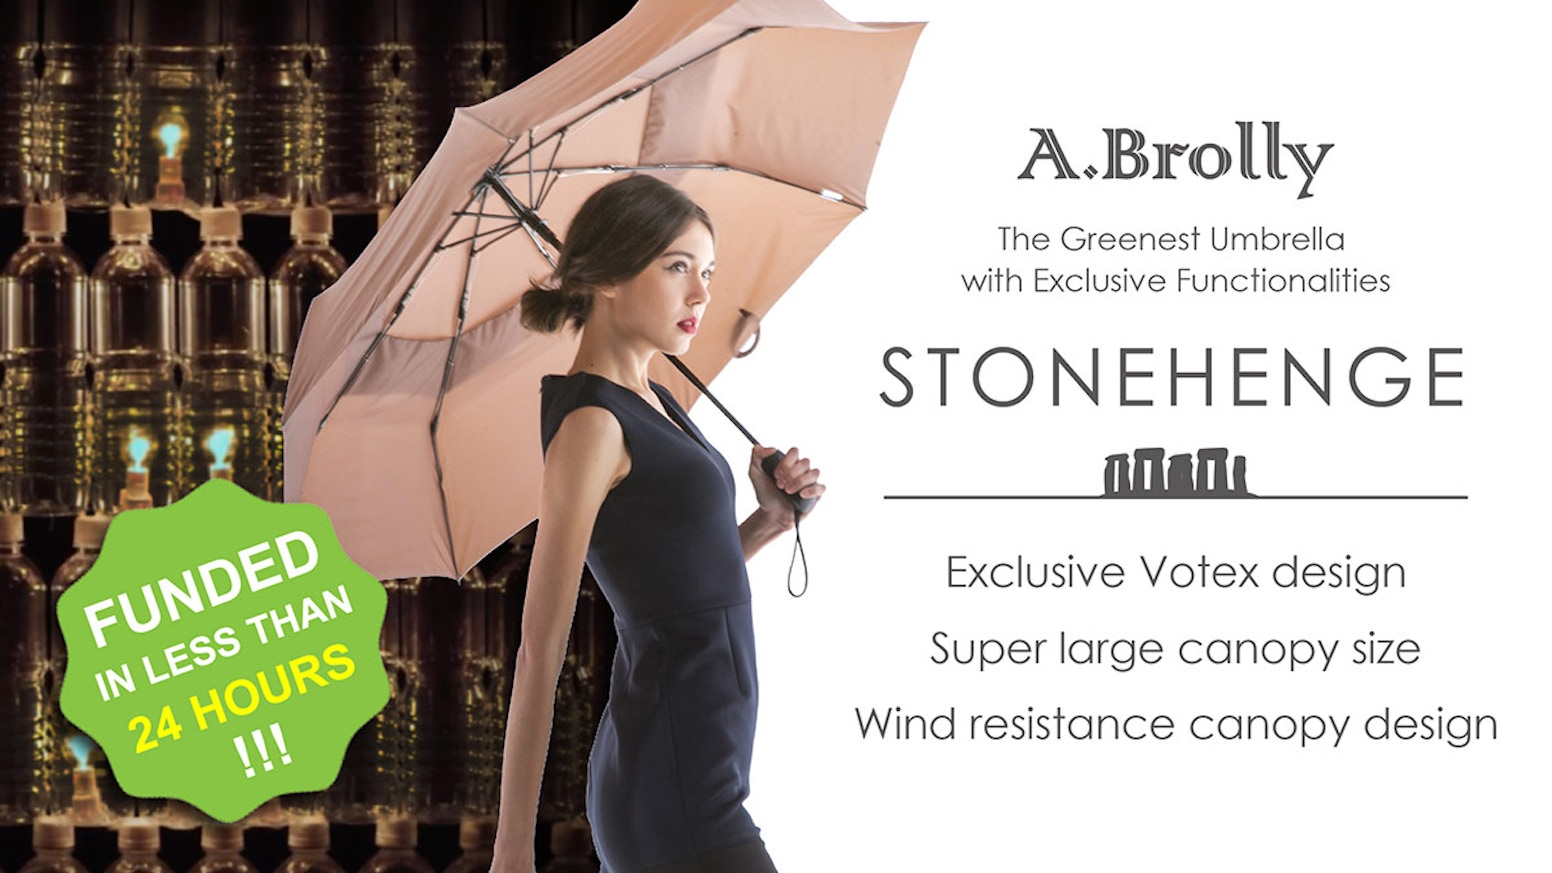 An umbrella that carries cutting-edge technologies and is environmental friendly